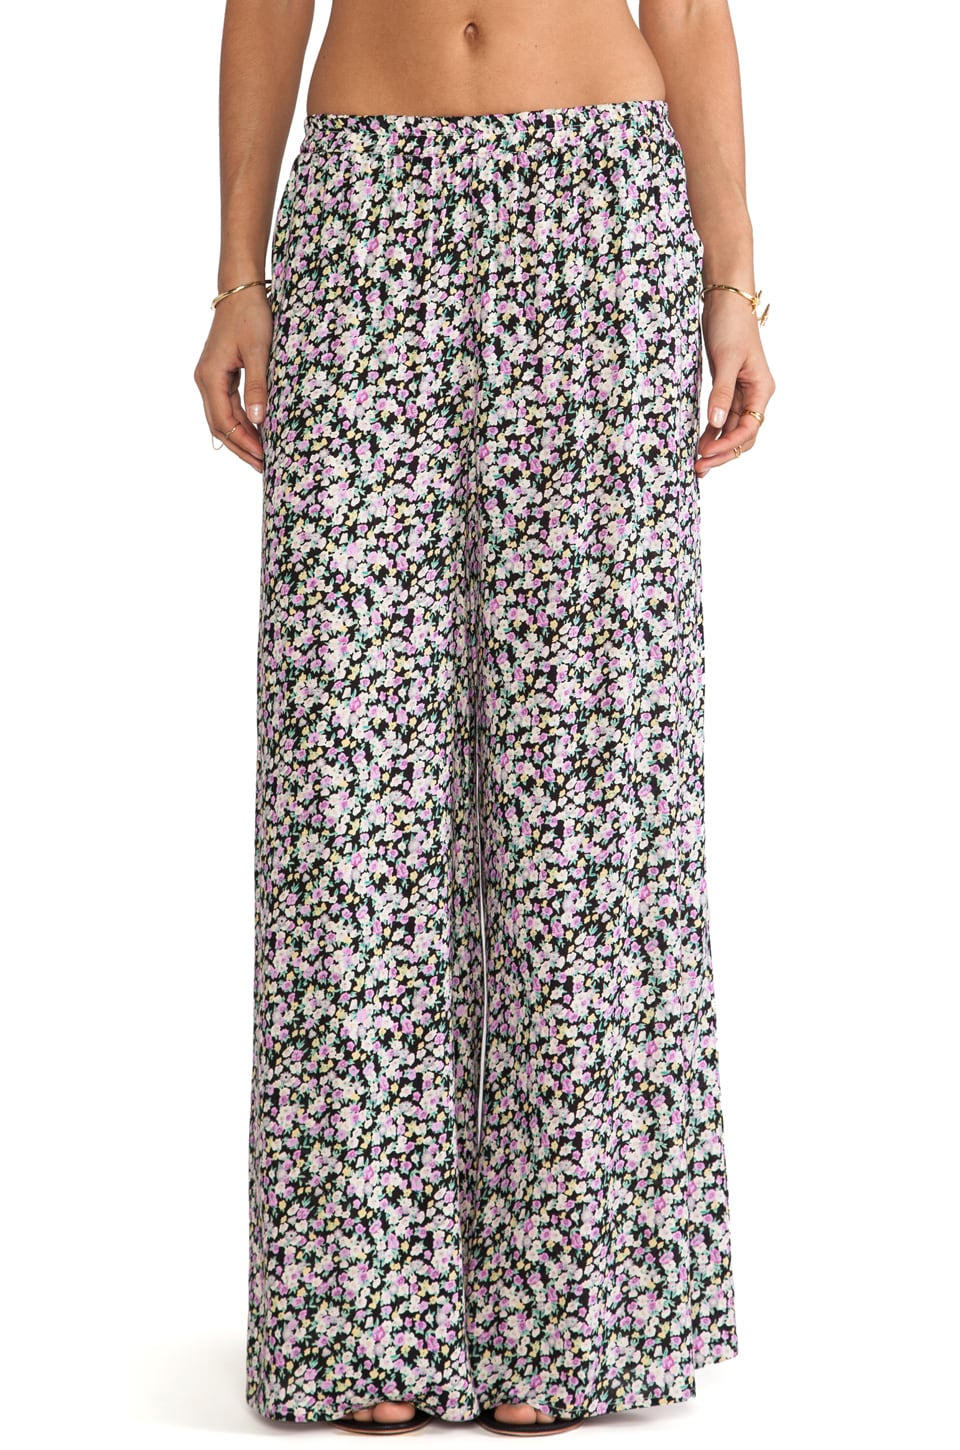 Lucca Couture Wide Leg Pant in Black Ditsy